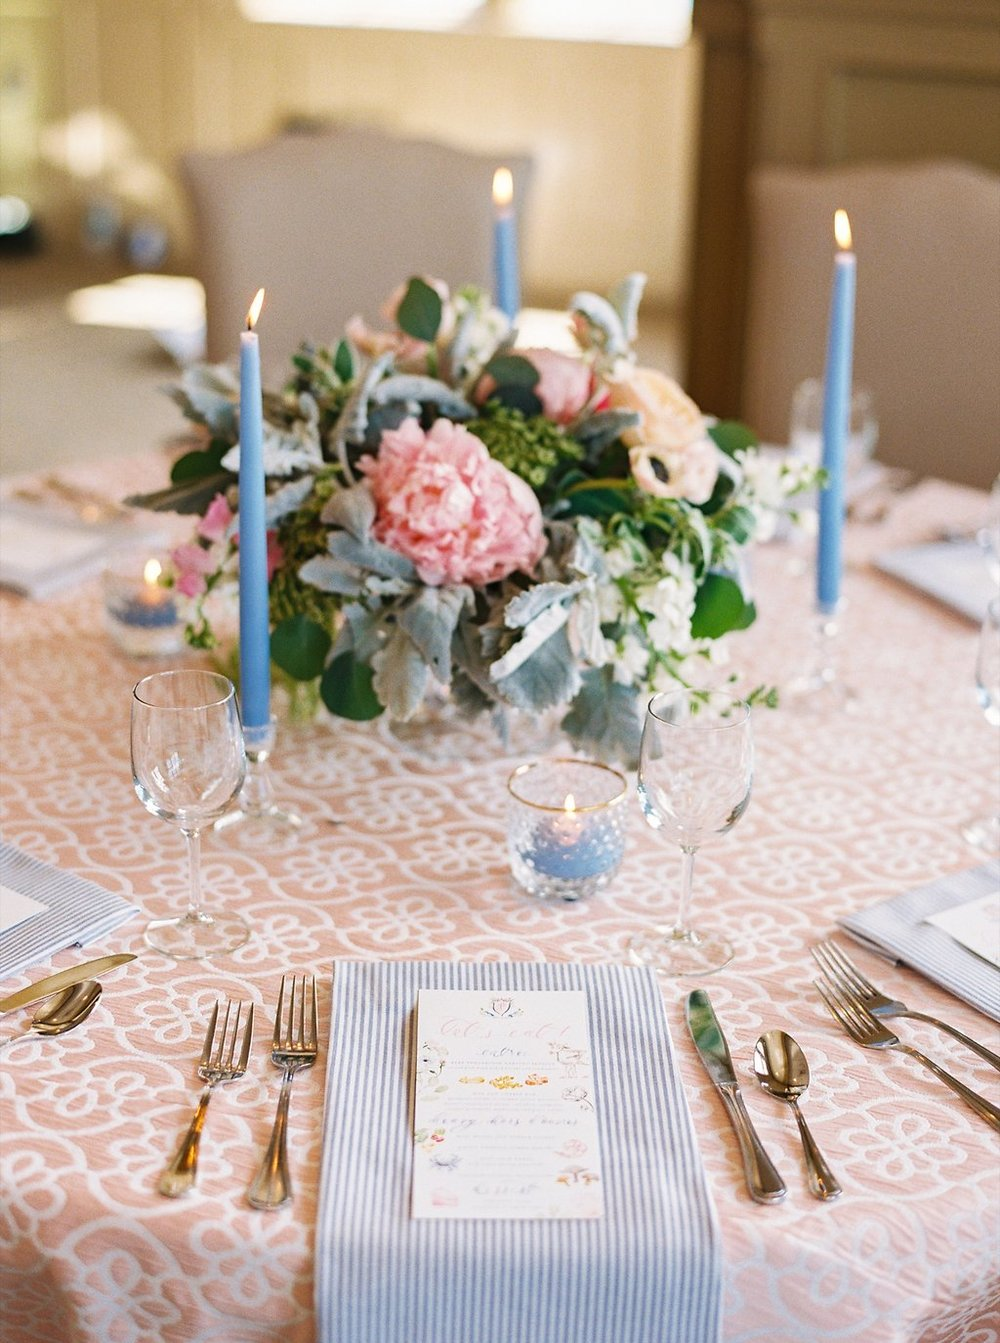 Southern Wedding Reception Design with Patterned Linens, Colorful Floral Centerpieces, and Sweet Blue Taper Candles | Blush and Navy Wedding with Fuchsia, French Blue and Gold Accents | Simply Jessica Marie's Southern Wedding at Gettysvue Golf Course and Country Club in Knoxville Tennessee | Photo by Perry Vaile Photography